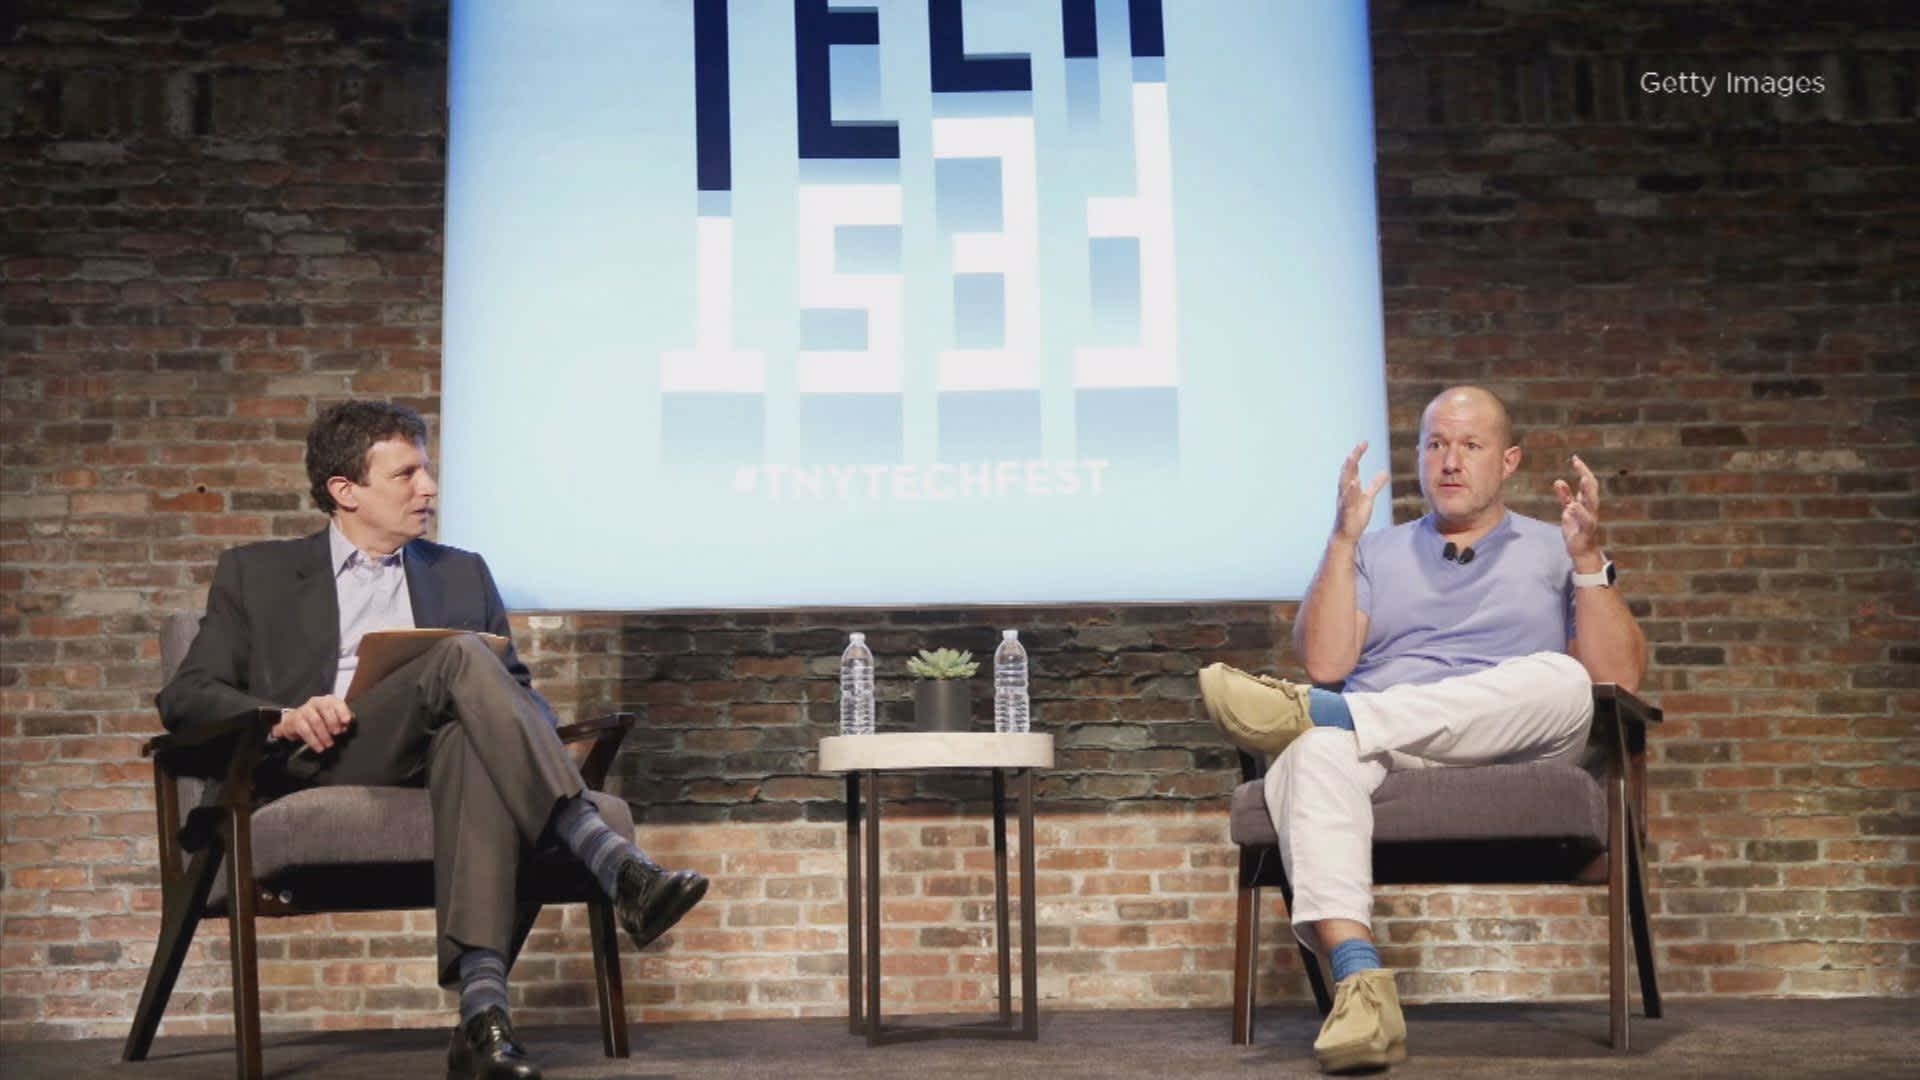 Apples Jony Ive Speaks About Design At The New Yorker Techfest